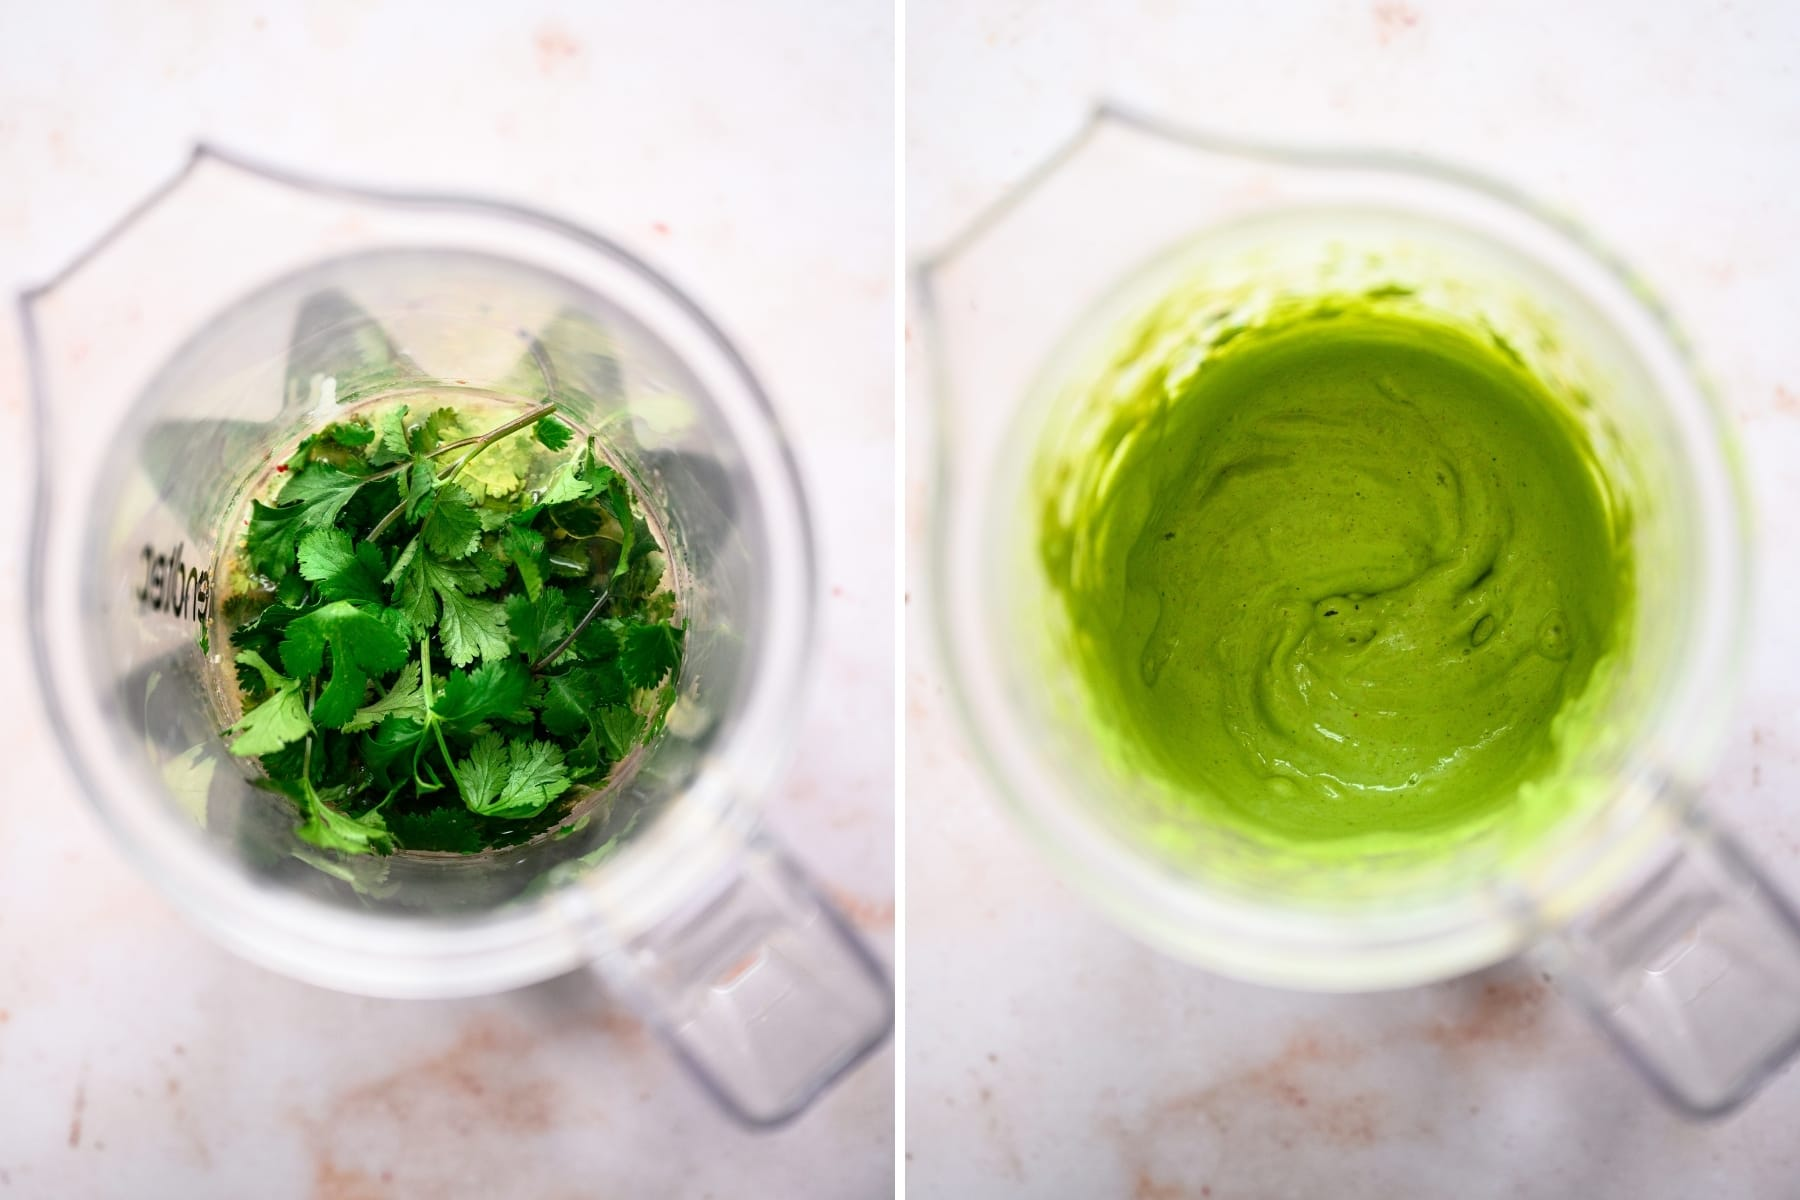 before and after blending cilantro tahini sauce.